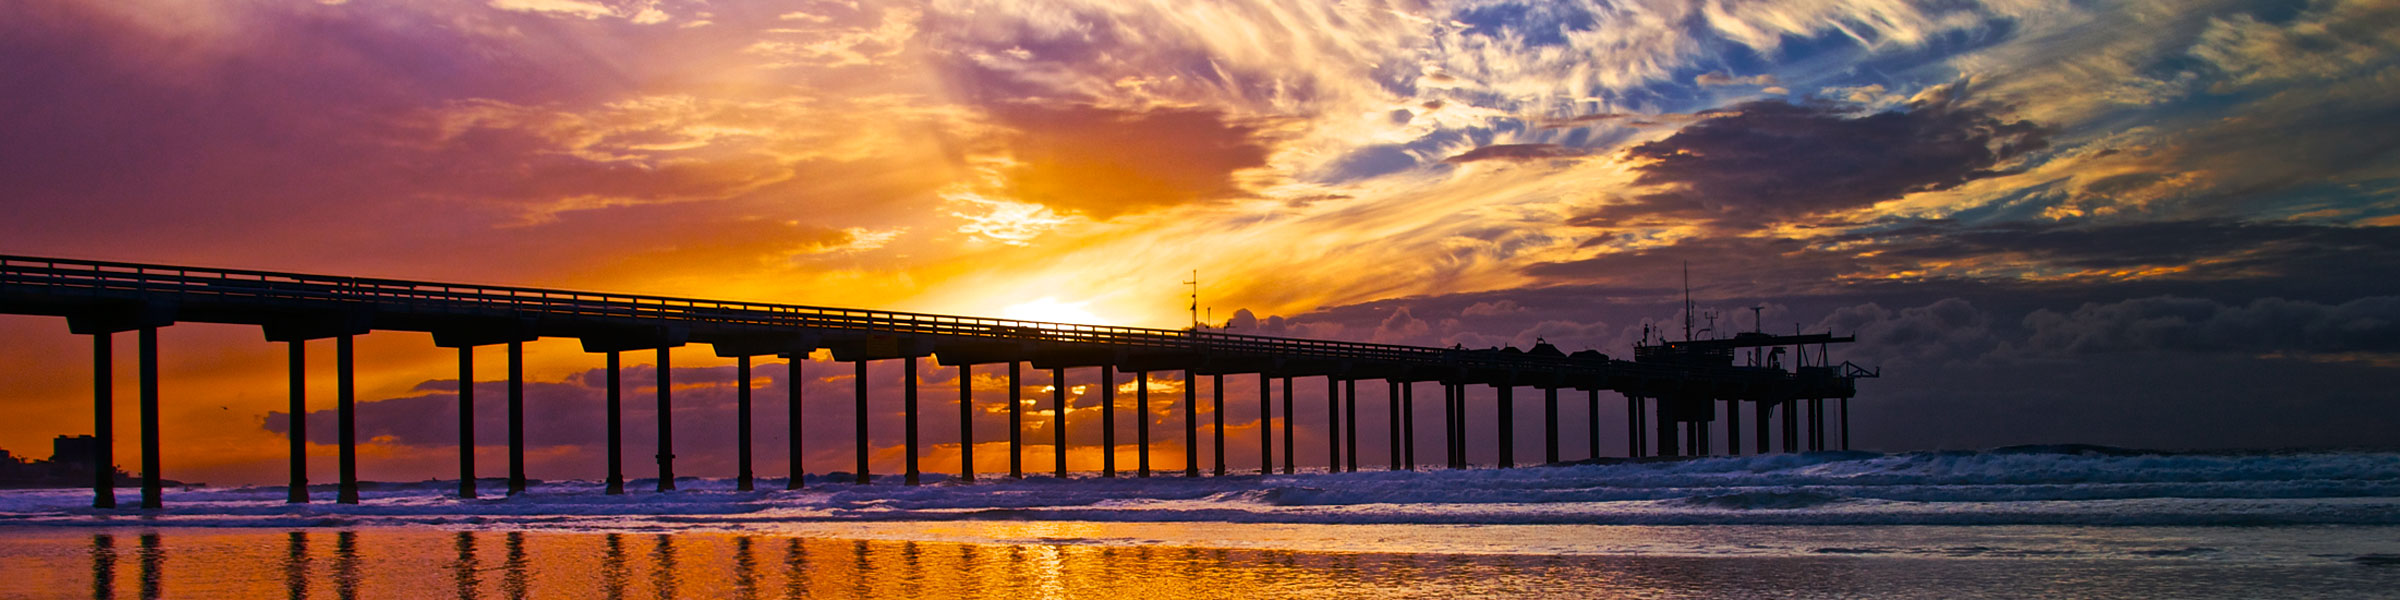 Scripps Pier silhouetted by sunset